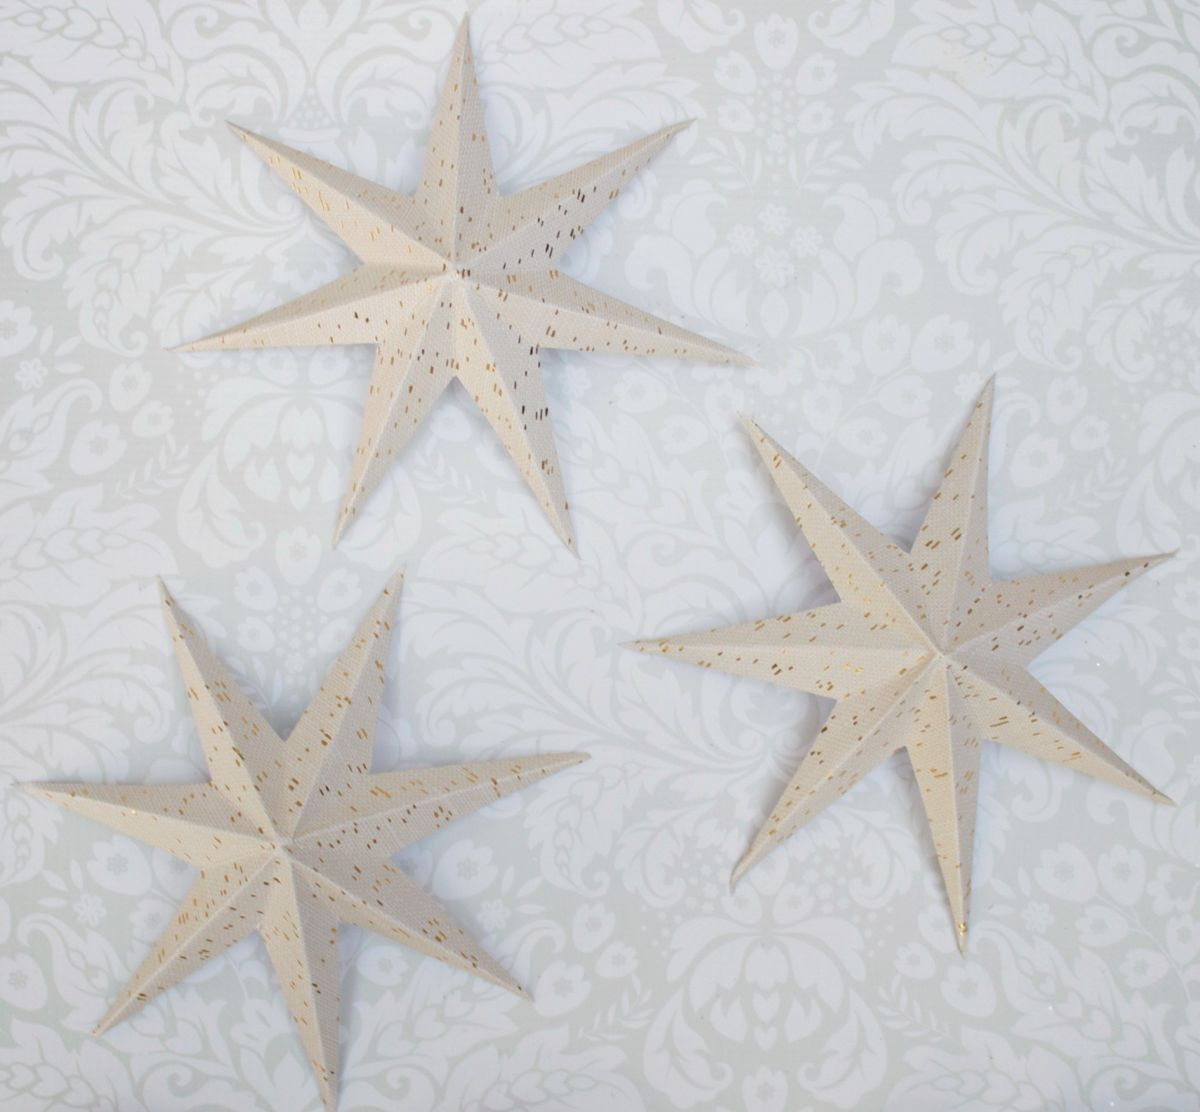 Making the paper stars